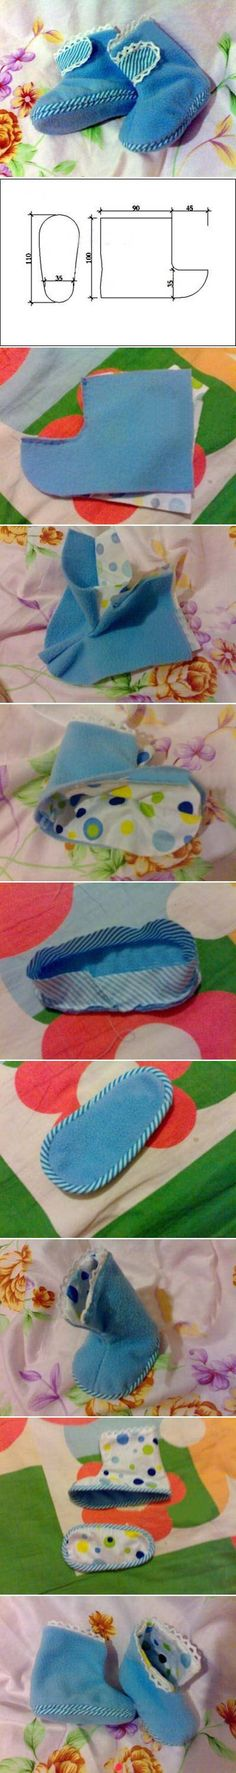 DIY Baby Boots cute blue baby boots diy easy crafts diy ideas diy crafts do it yourself easy diy diy tips diy images do it yourself images diy photos diy pics baby shoes easy bay clothes kids crafts Doll Clothes Patterns, Doll Patterns, Sewing Patterns, Sewing For Kids, Baby Sewing, Sewing Crafts, Sewing Projects, Diy Projects, Diy Bebe